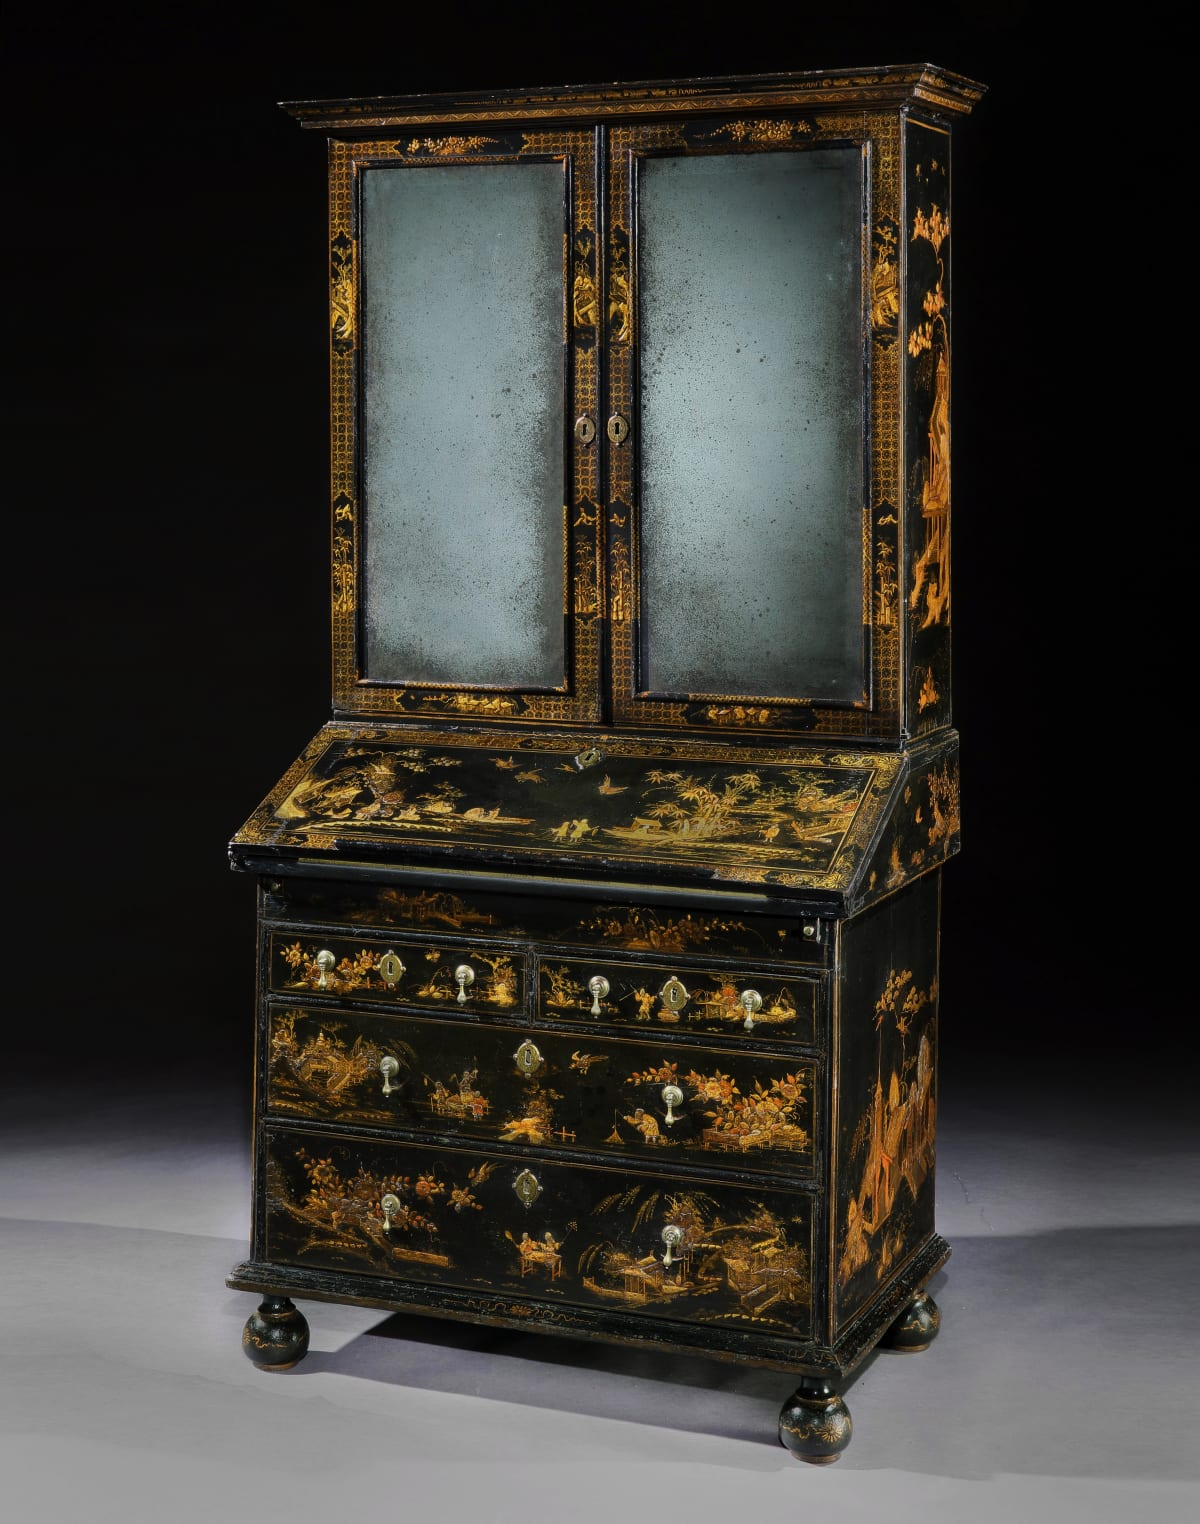 A WILLIAM AND MARY JAPANNED BUREAU BOOKCASE, ENGLISH, CIRCA 1685